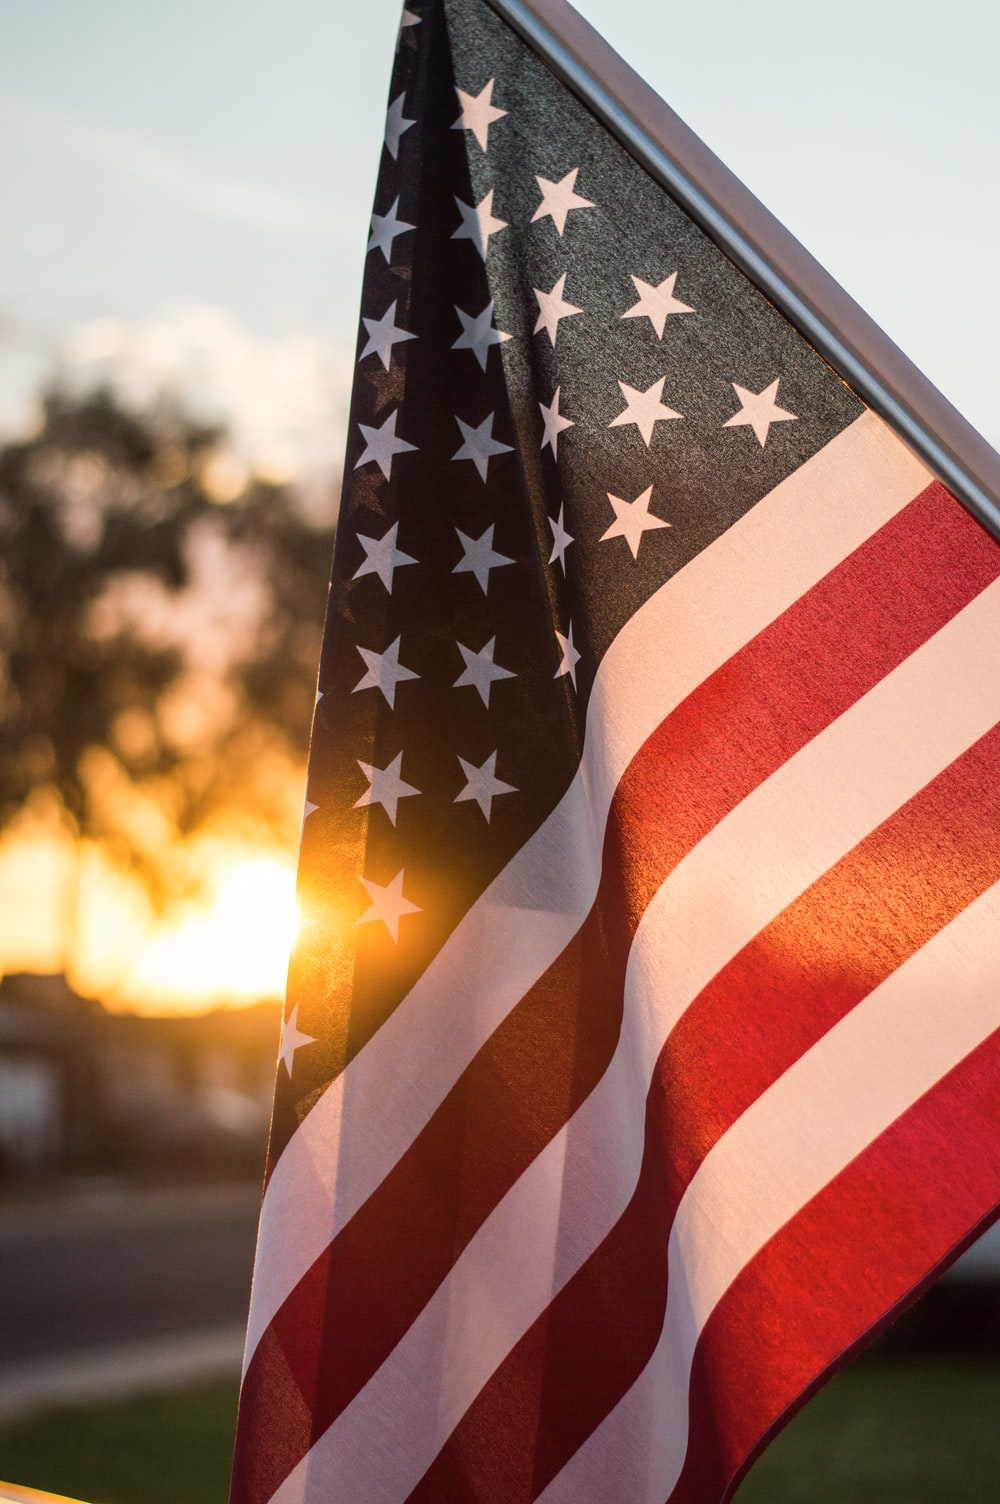 Best 20+ American Flag Pictures | Download Free Images on Unsplash Images Of Usa States on mexico of usa, national of usa, maps of usa, native american tribes of usa, industry of usa, ethnic groups of usa, women of usa, states and capitals, religion of usa, new york city, north america, states in usa, new jersey of usa, the 50 states map with the usa, animals of usa, utah of usa, nation of usa, new york, capitals of usa, major regions of usa, massachusetts of usa, united states maps usa, home of usa, united kingdom,